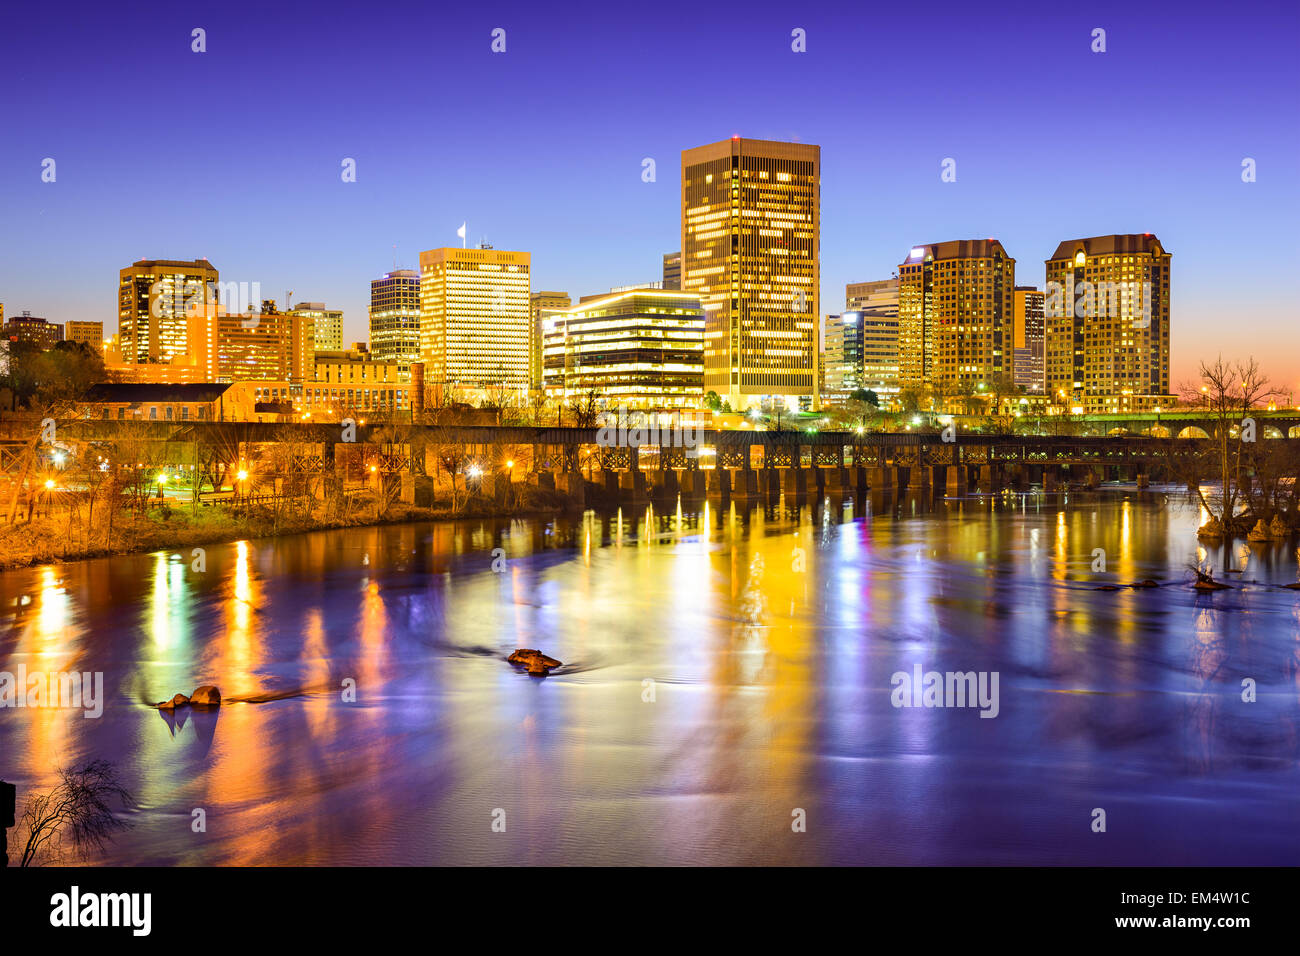 Richmond, Virgina, USA downtown skyline on the James River. - Stock Image